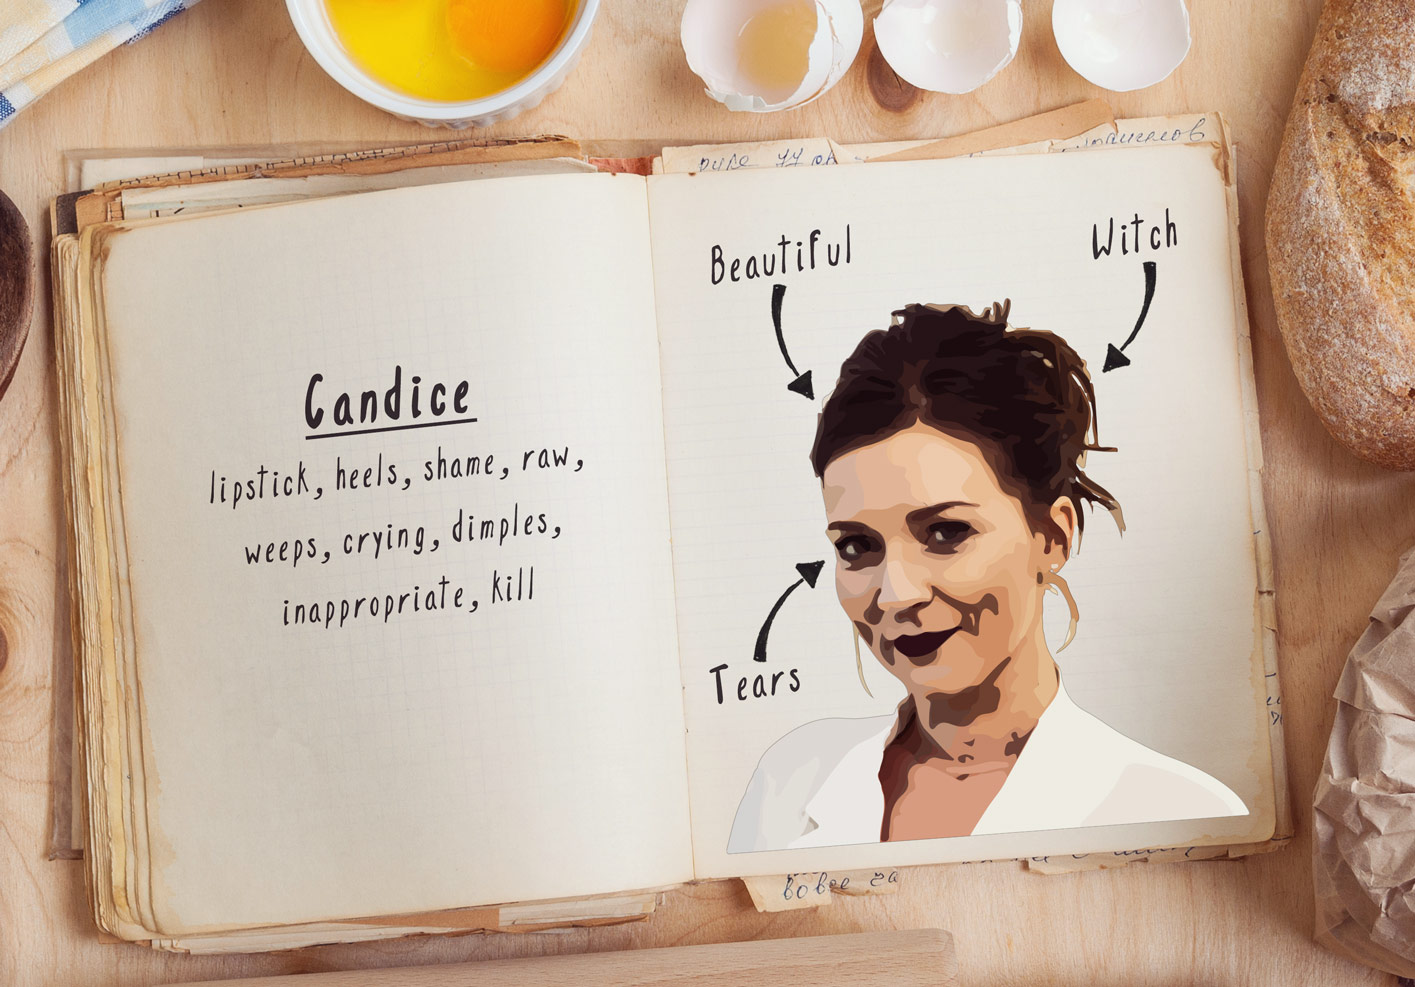 gbbo_book_candice